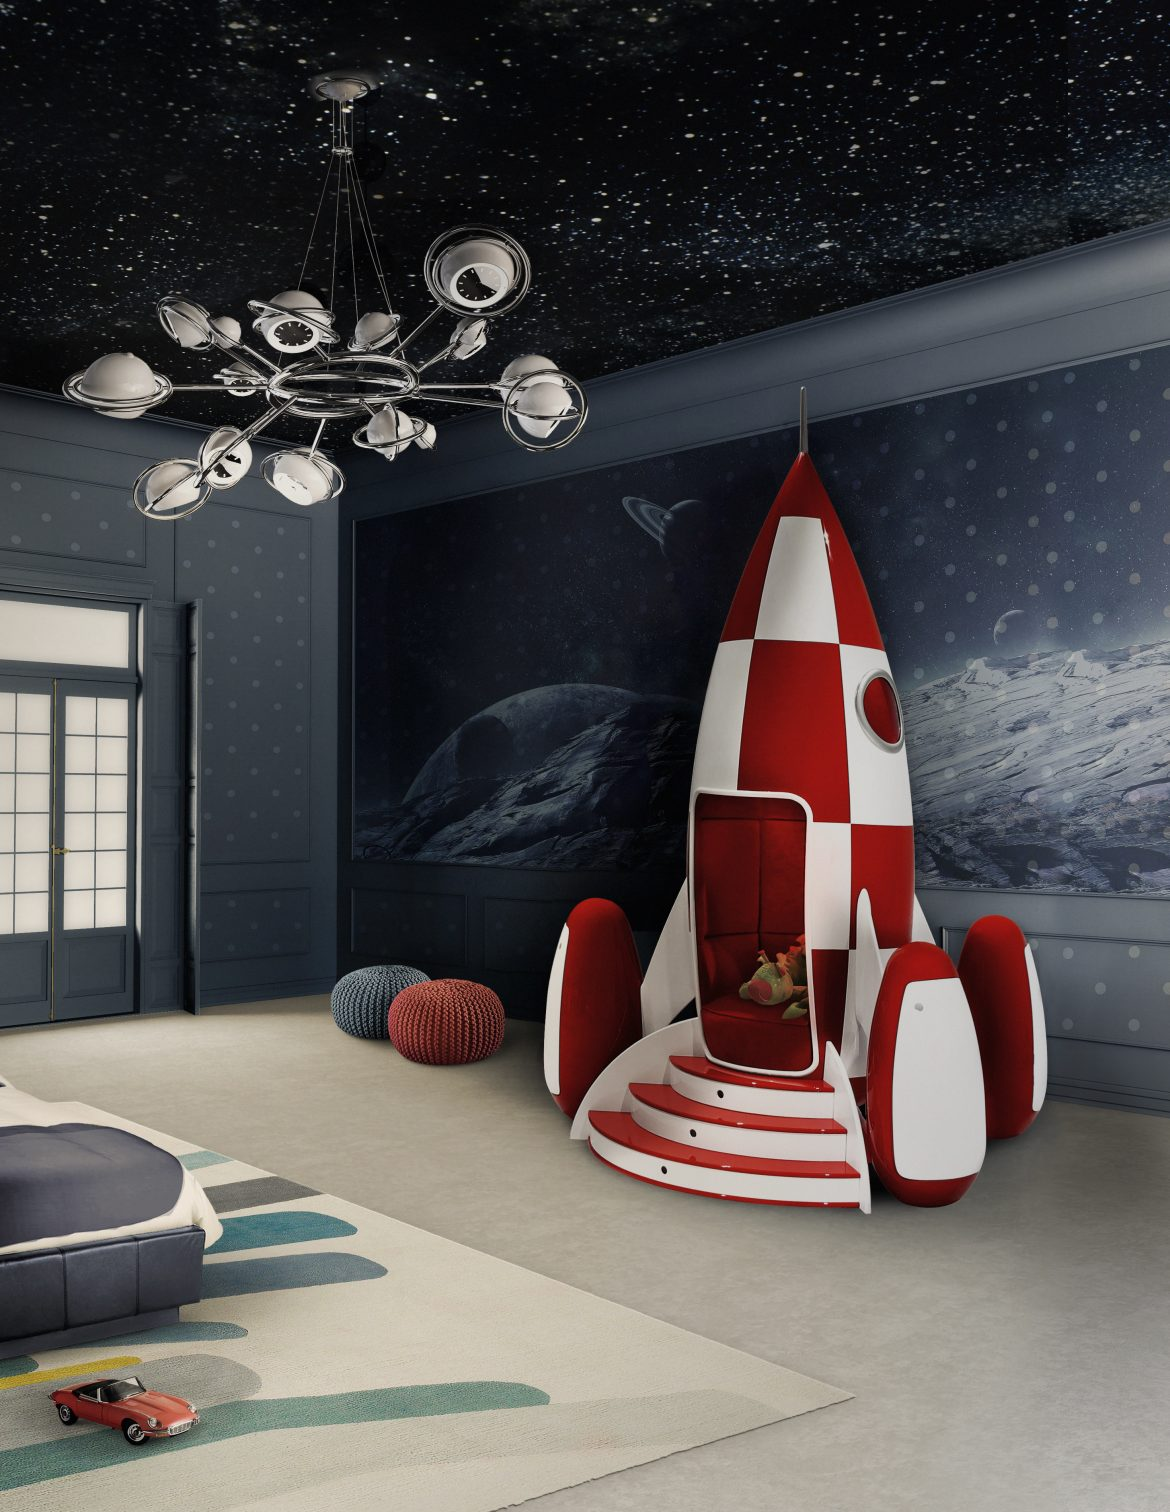 Children Room Decor Ideas Like You've Never Seen Before children room decor ideas Children Room Decor Ideas Like You've Never Seen Before Children Room Decor Ideas Like Youve Never Seen Before 2